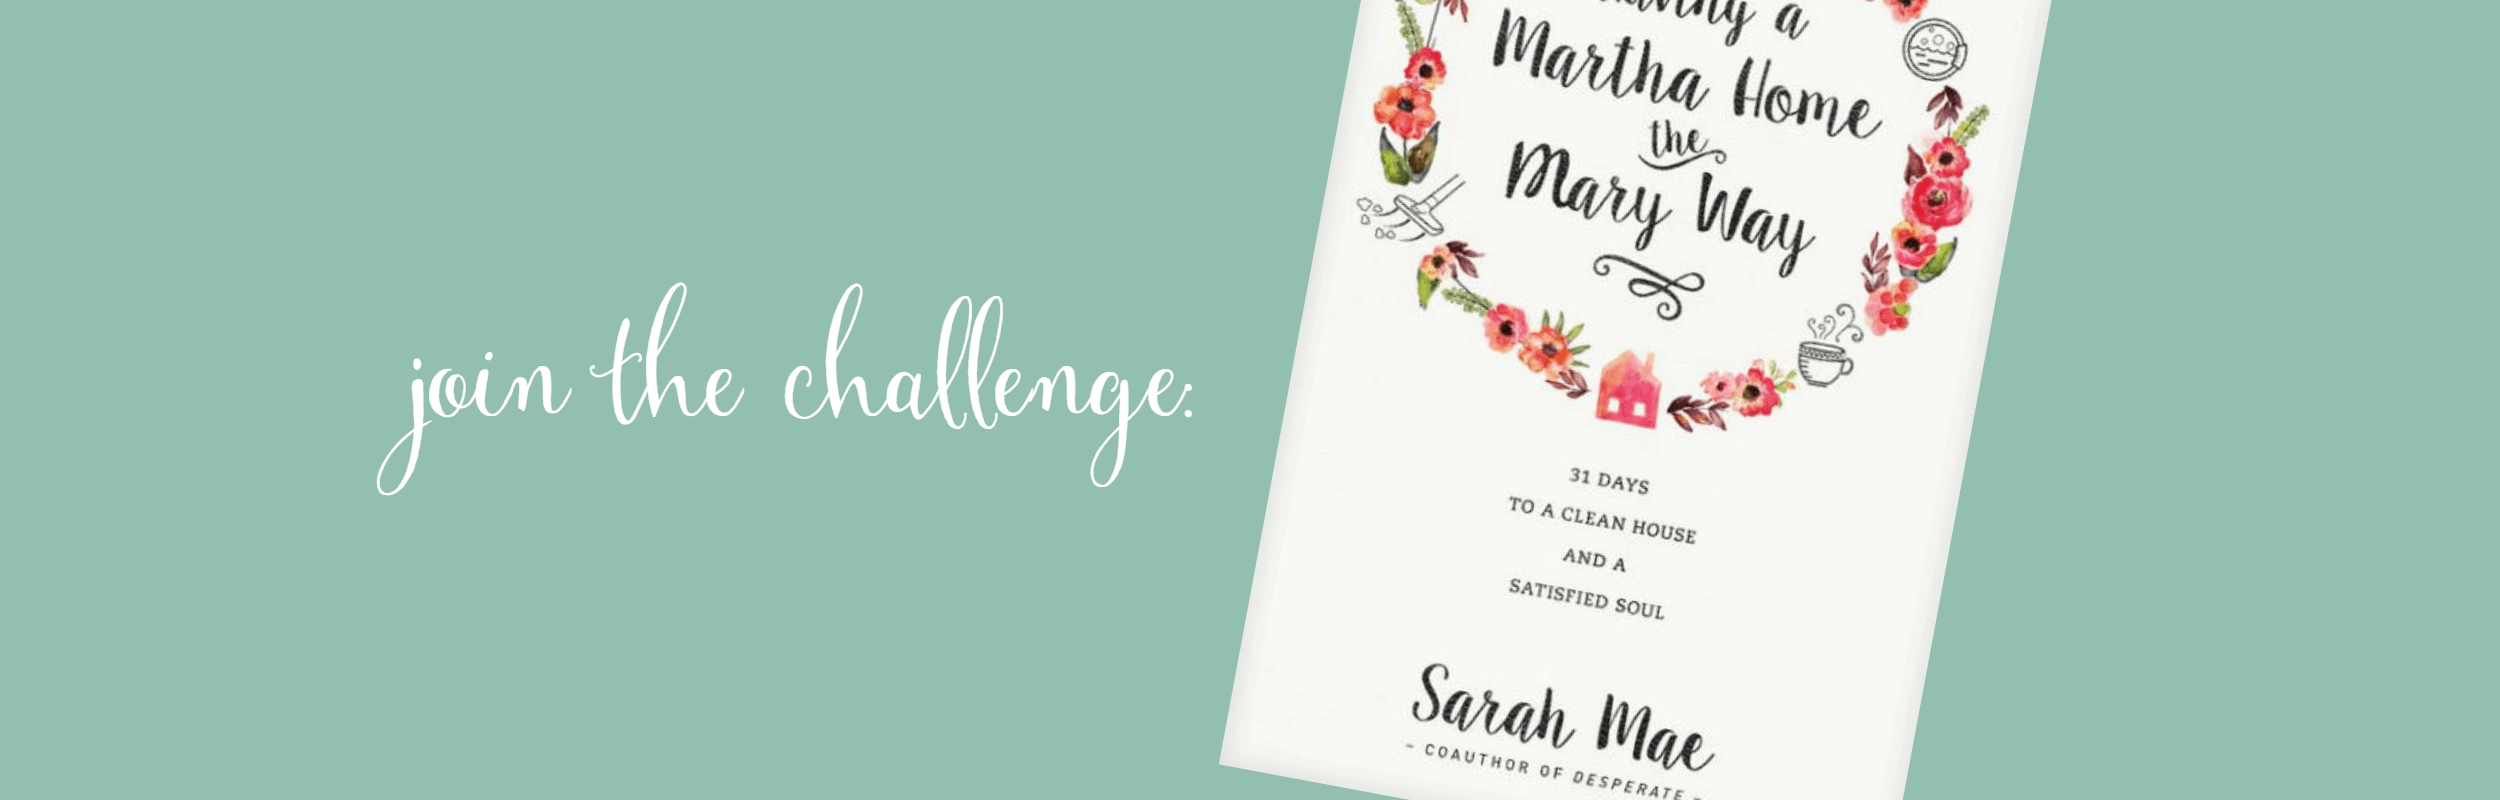 Having a Martha Home the Mary Way: 31 Day Challenge